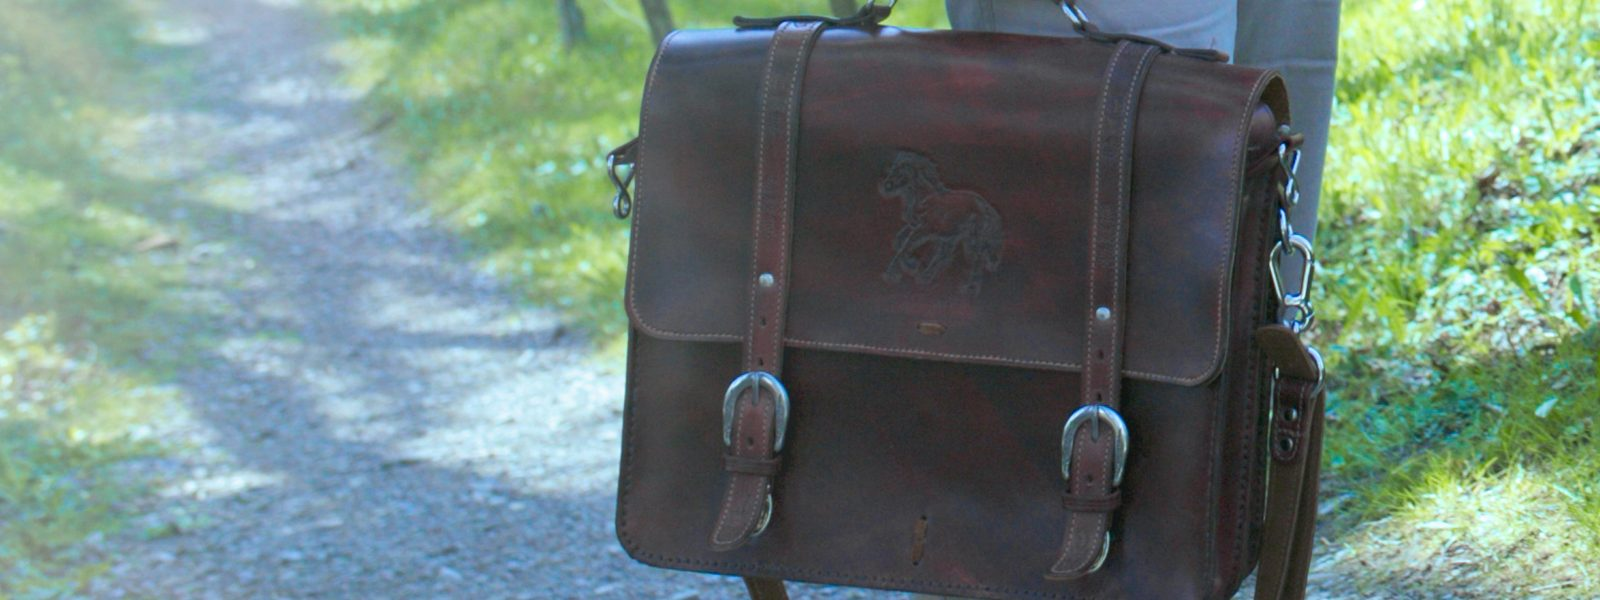 Briefcase Conny http//beavermountainworks.com You dream it - we make it.